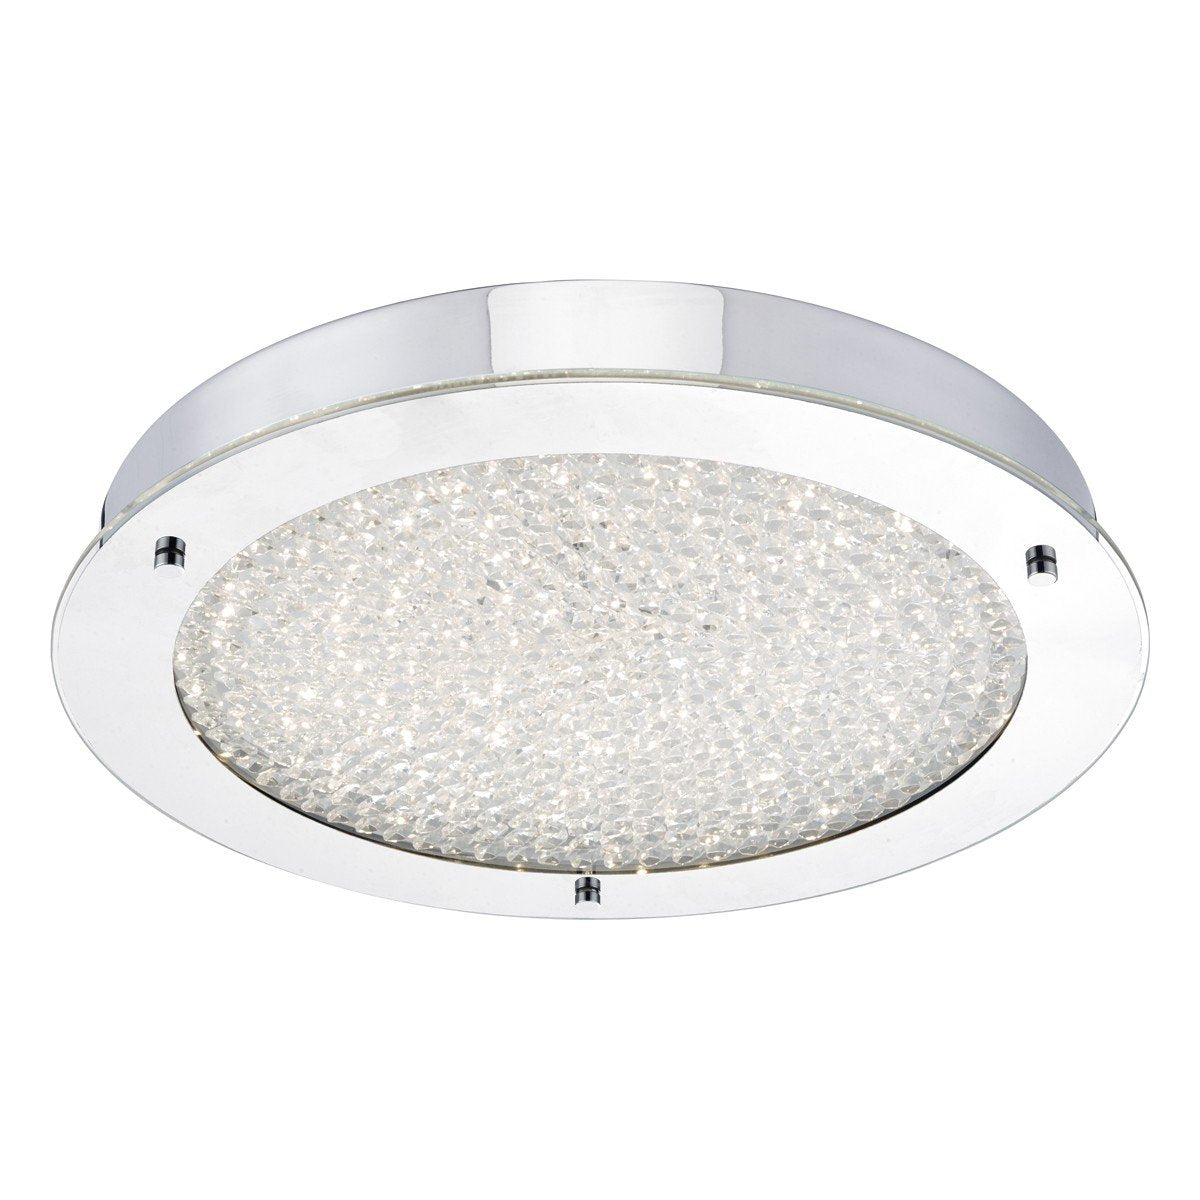 Heath Polished Chrome and Crystal Flush Bathroom Light - ID 6890